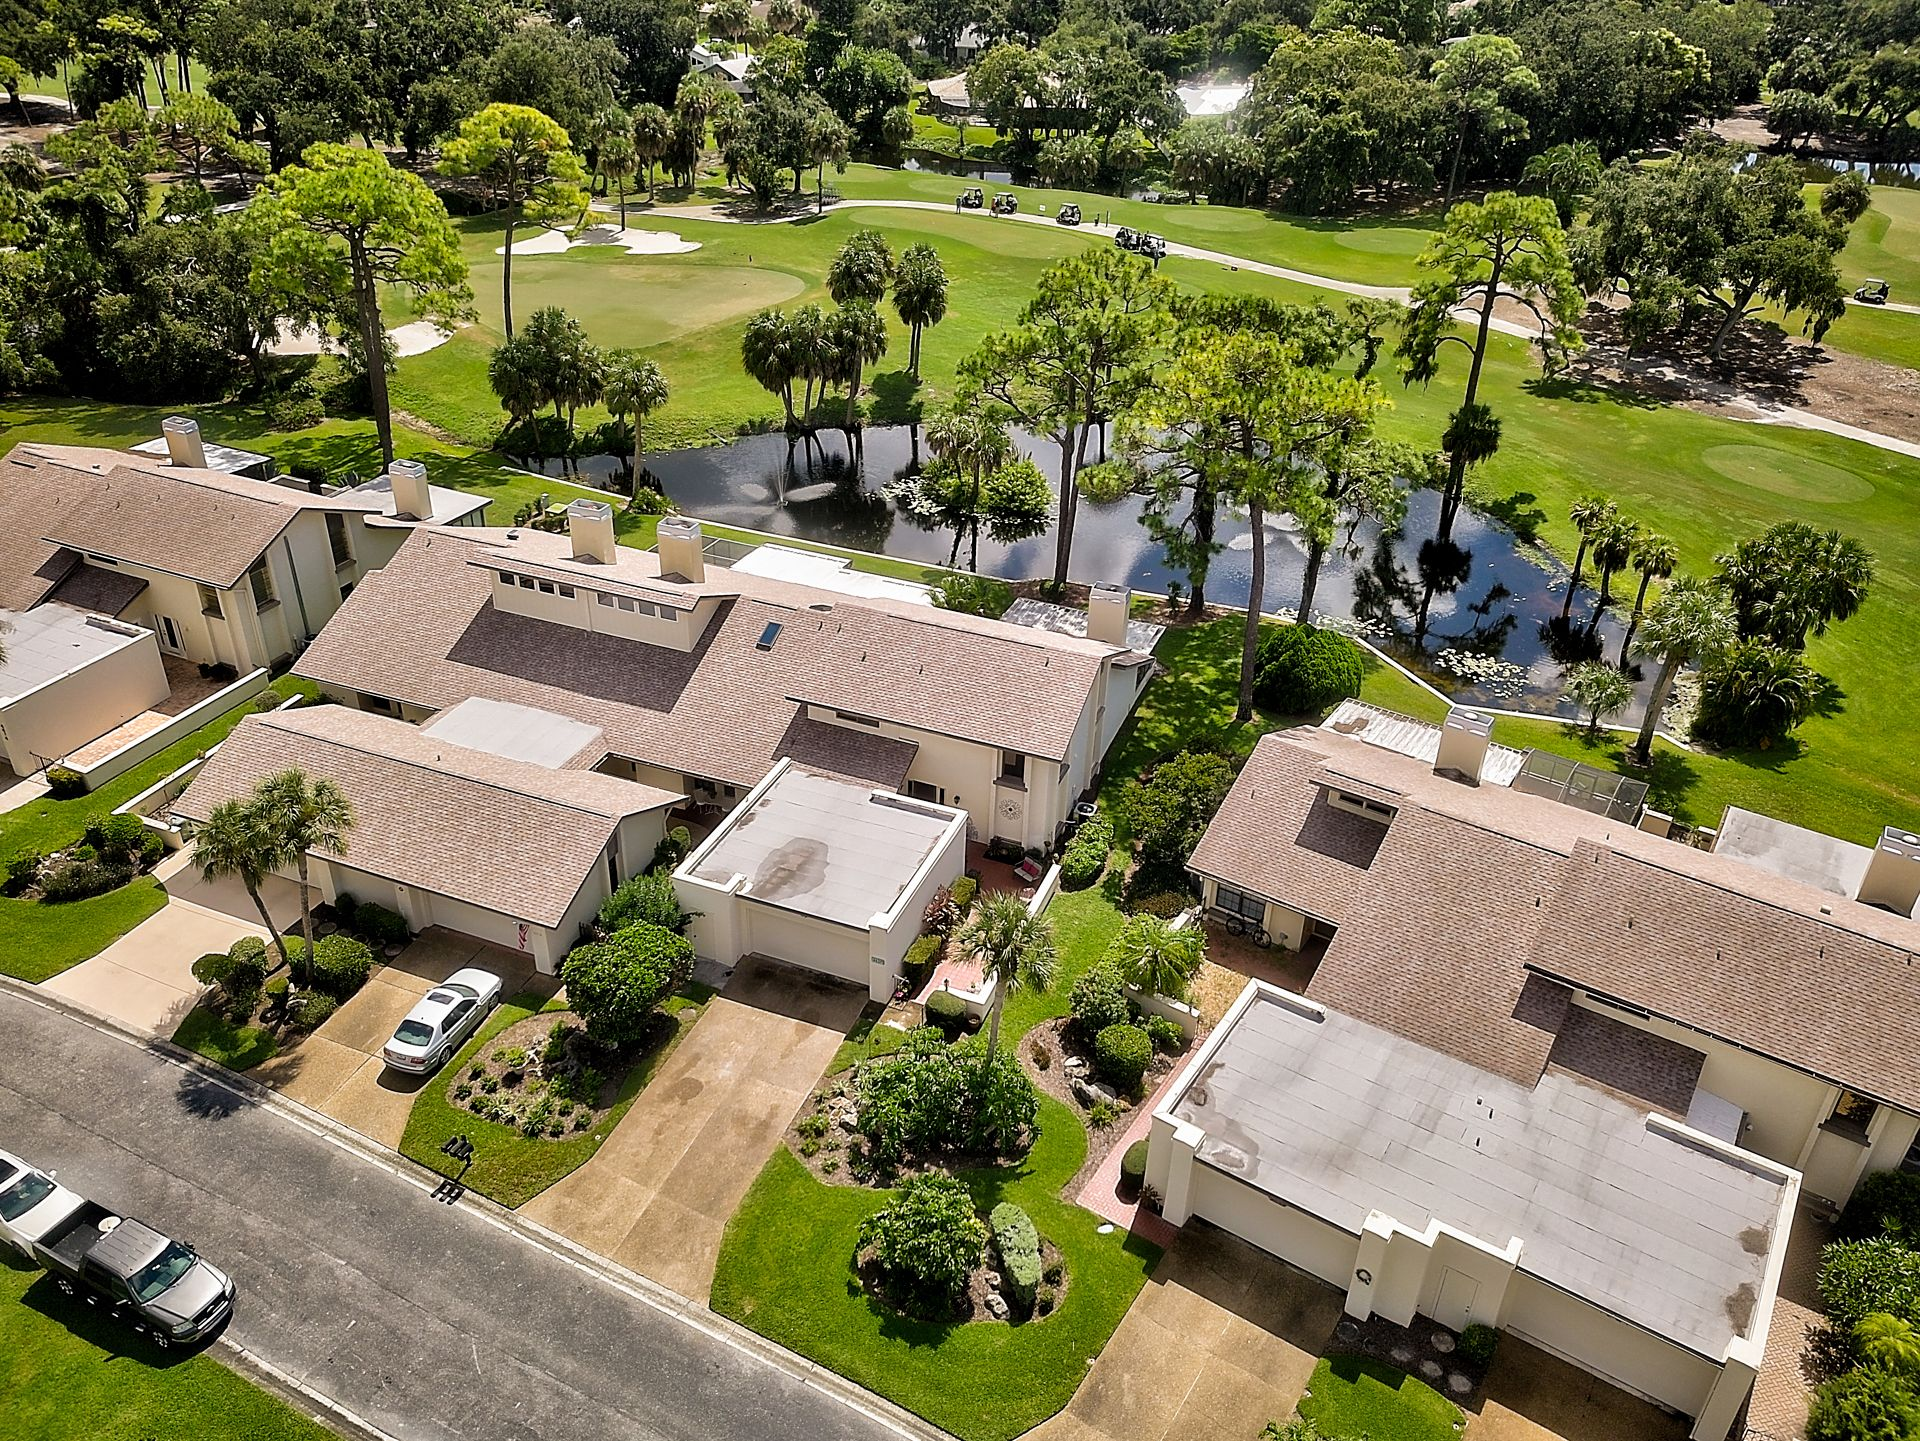 For sale 3bd3ba condo with water golf course views